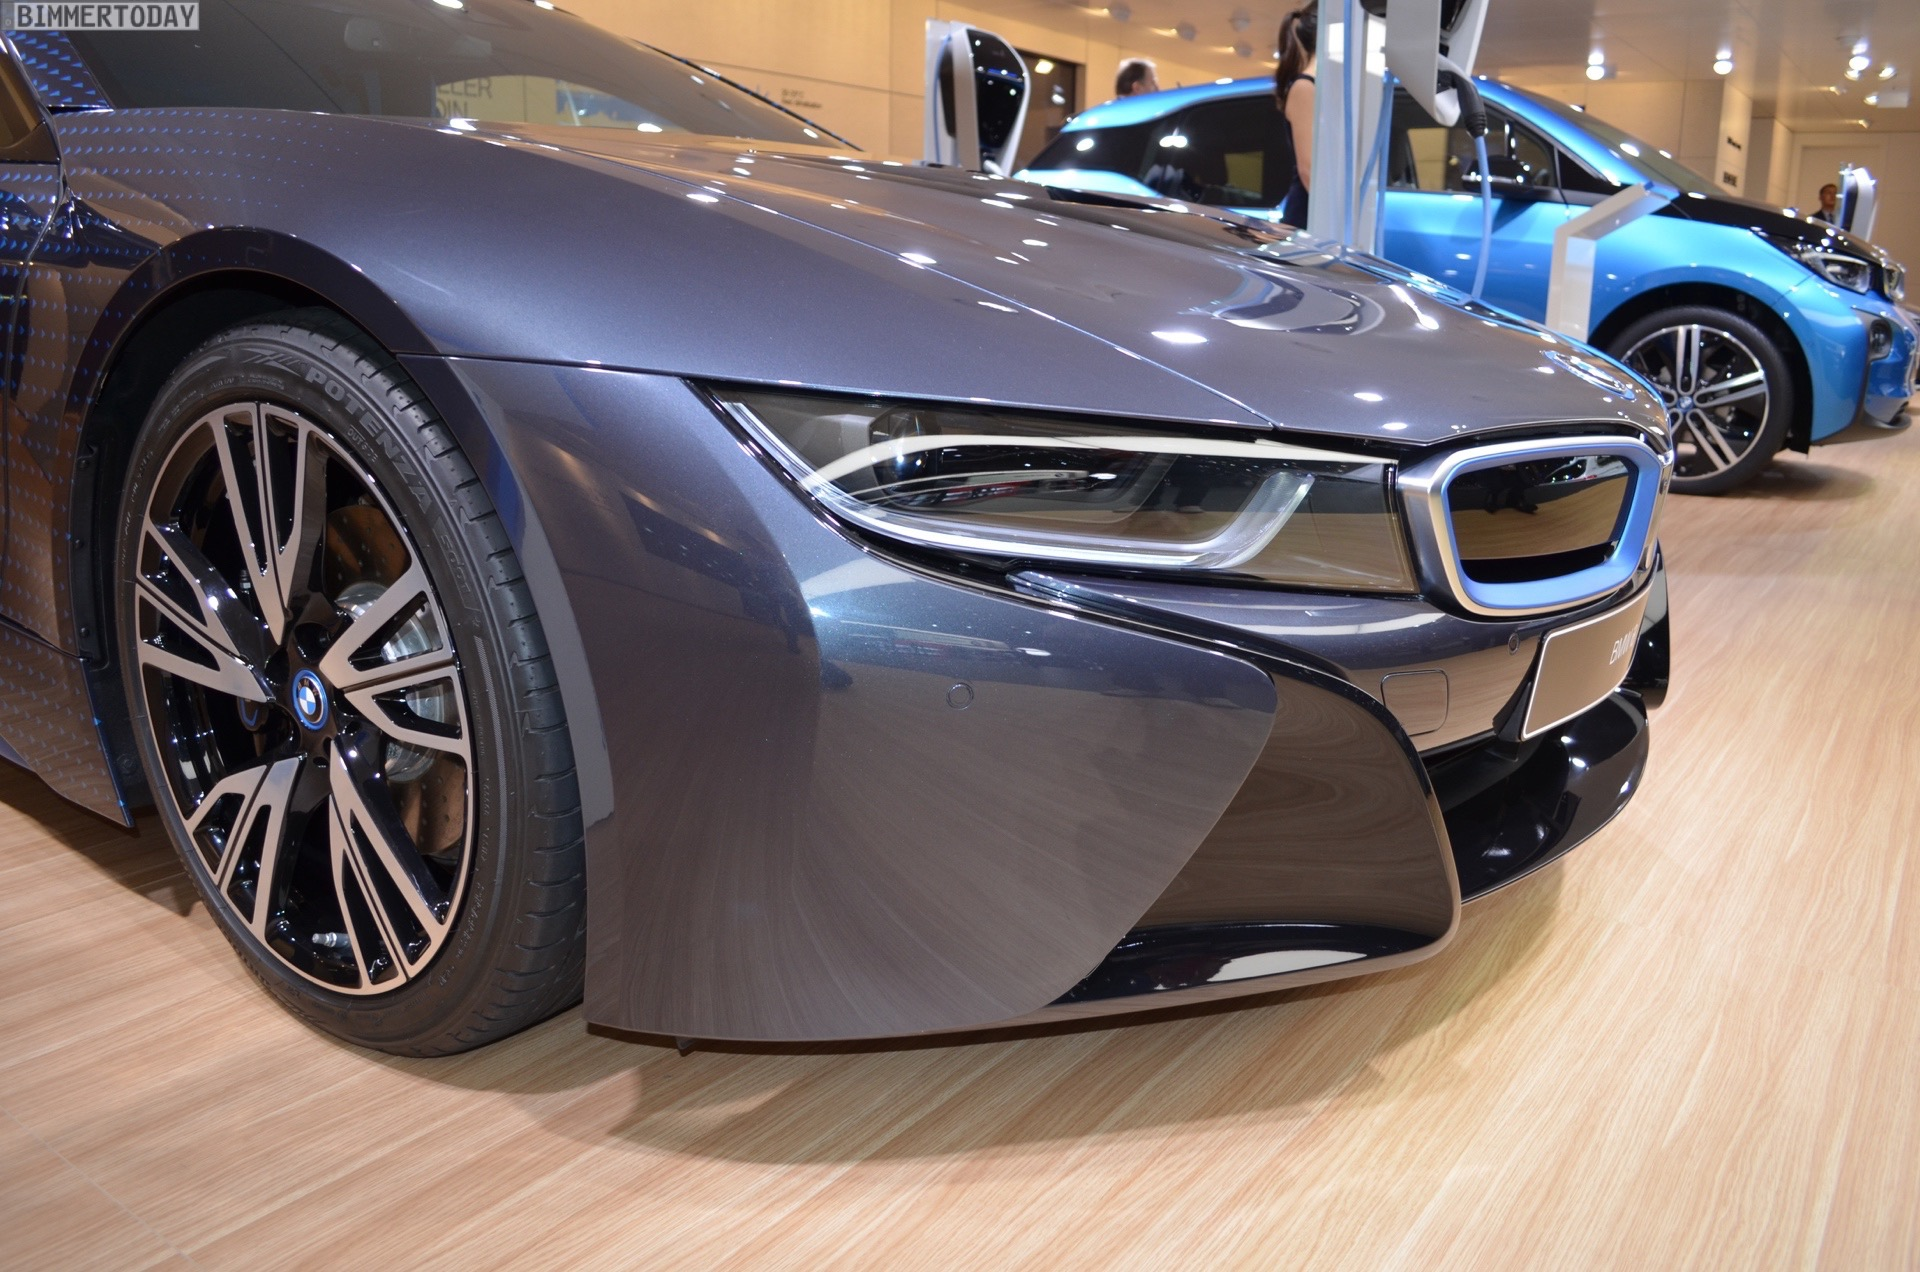 The BMW I8 Garage Italia CrossFades Exterior Design With Smooth Transition From Dark Silver Of Front End Car To Pure Blue